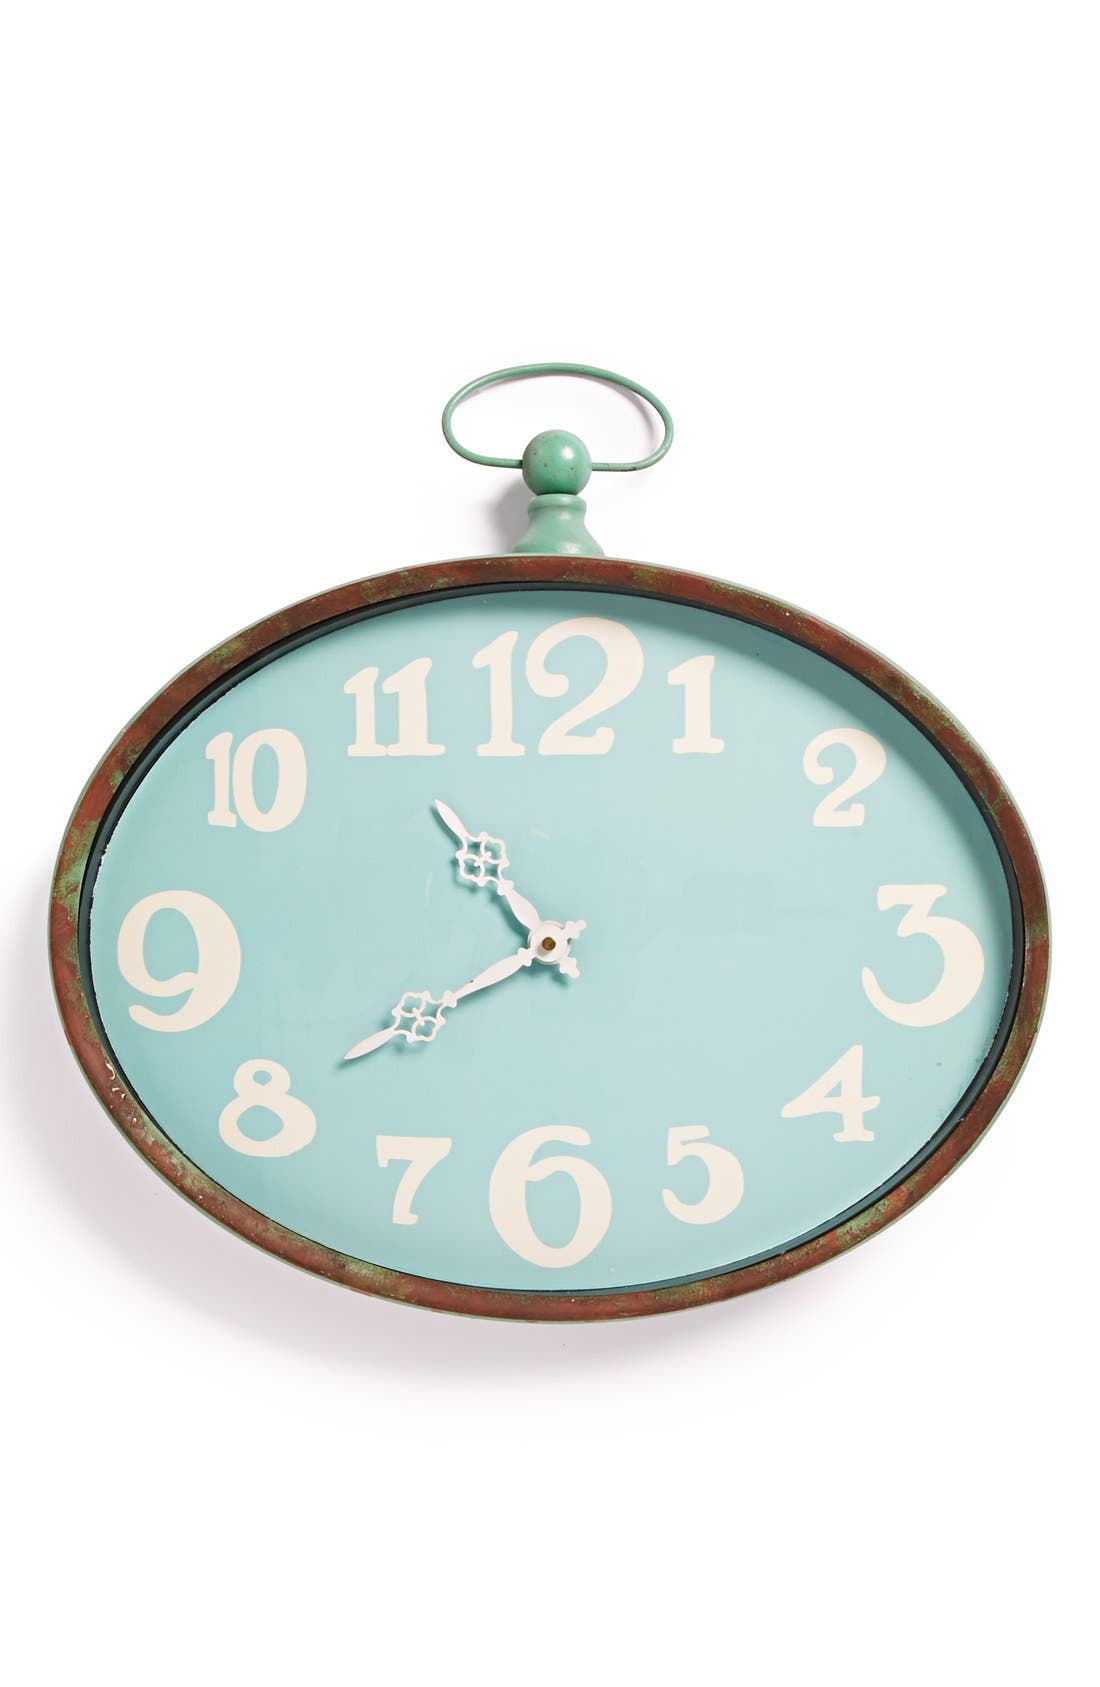 Alternate Image 1 Selected - Foreside Oval Wall Clock